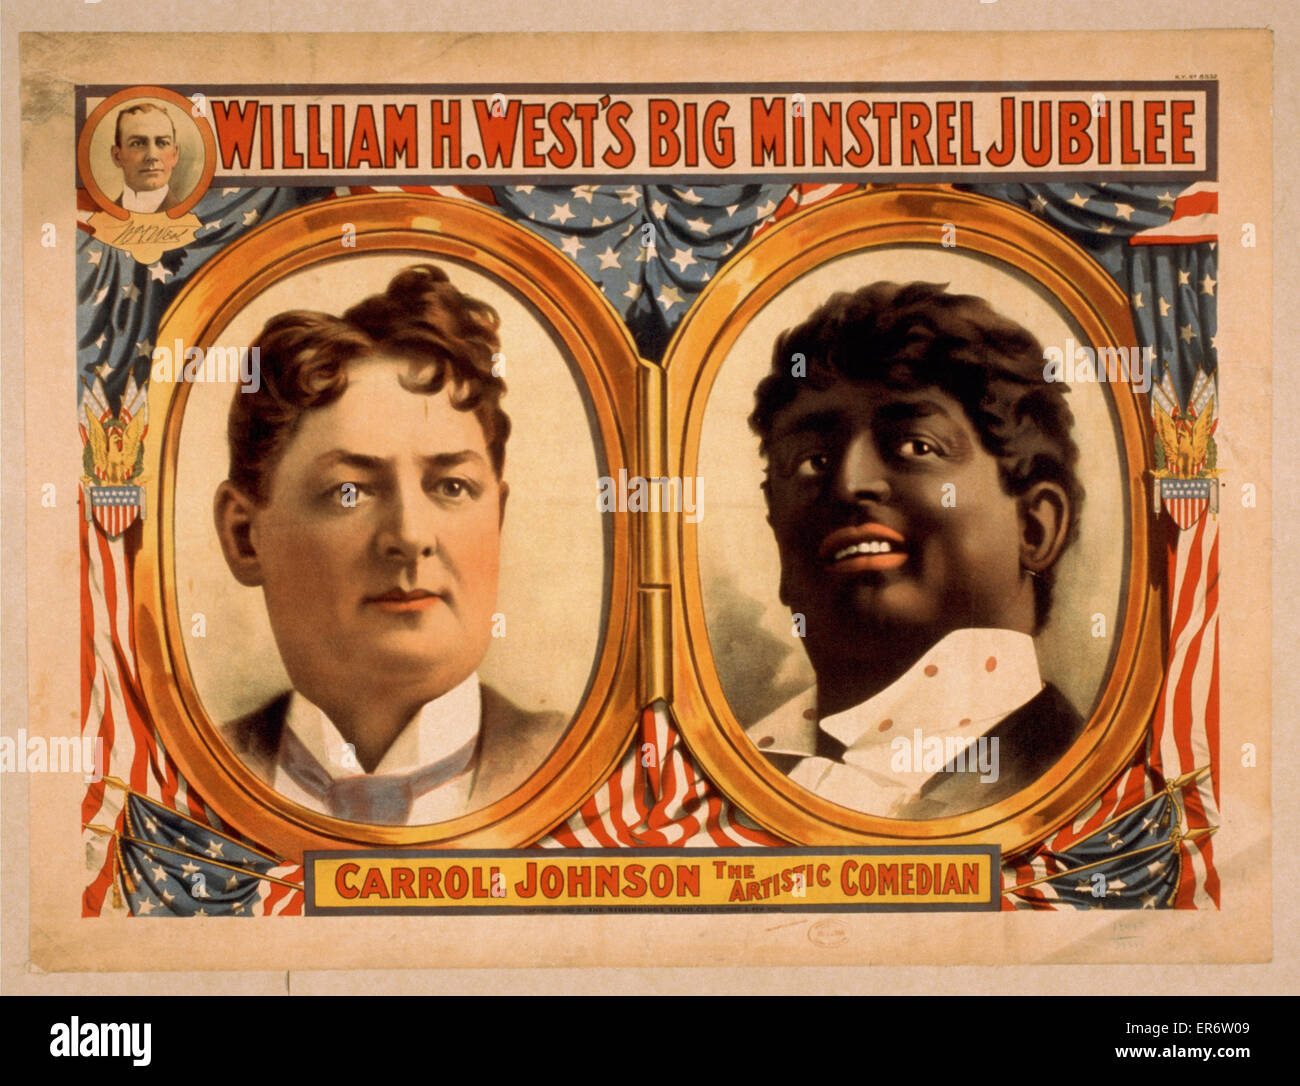 William H. West's Big Minstrel Jubilee. Consists of portraits of Carroll Johnson, one as himself and one in - Stock Image